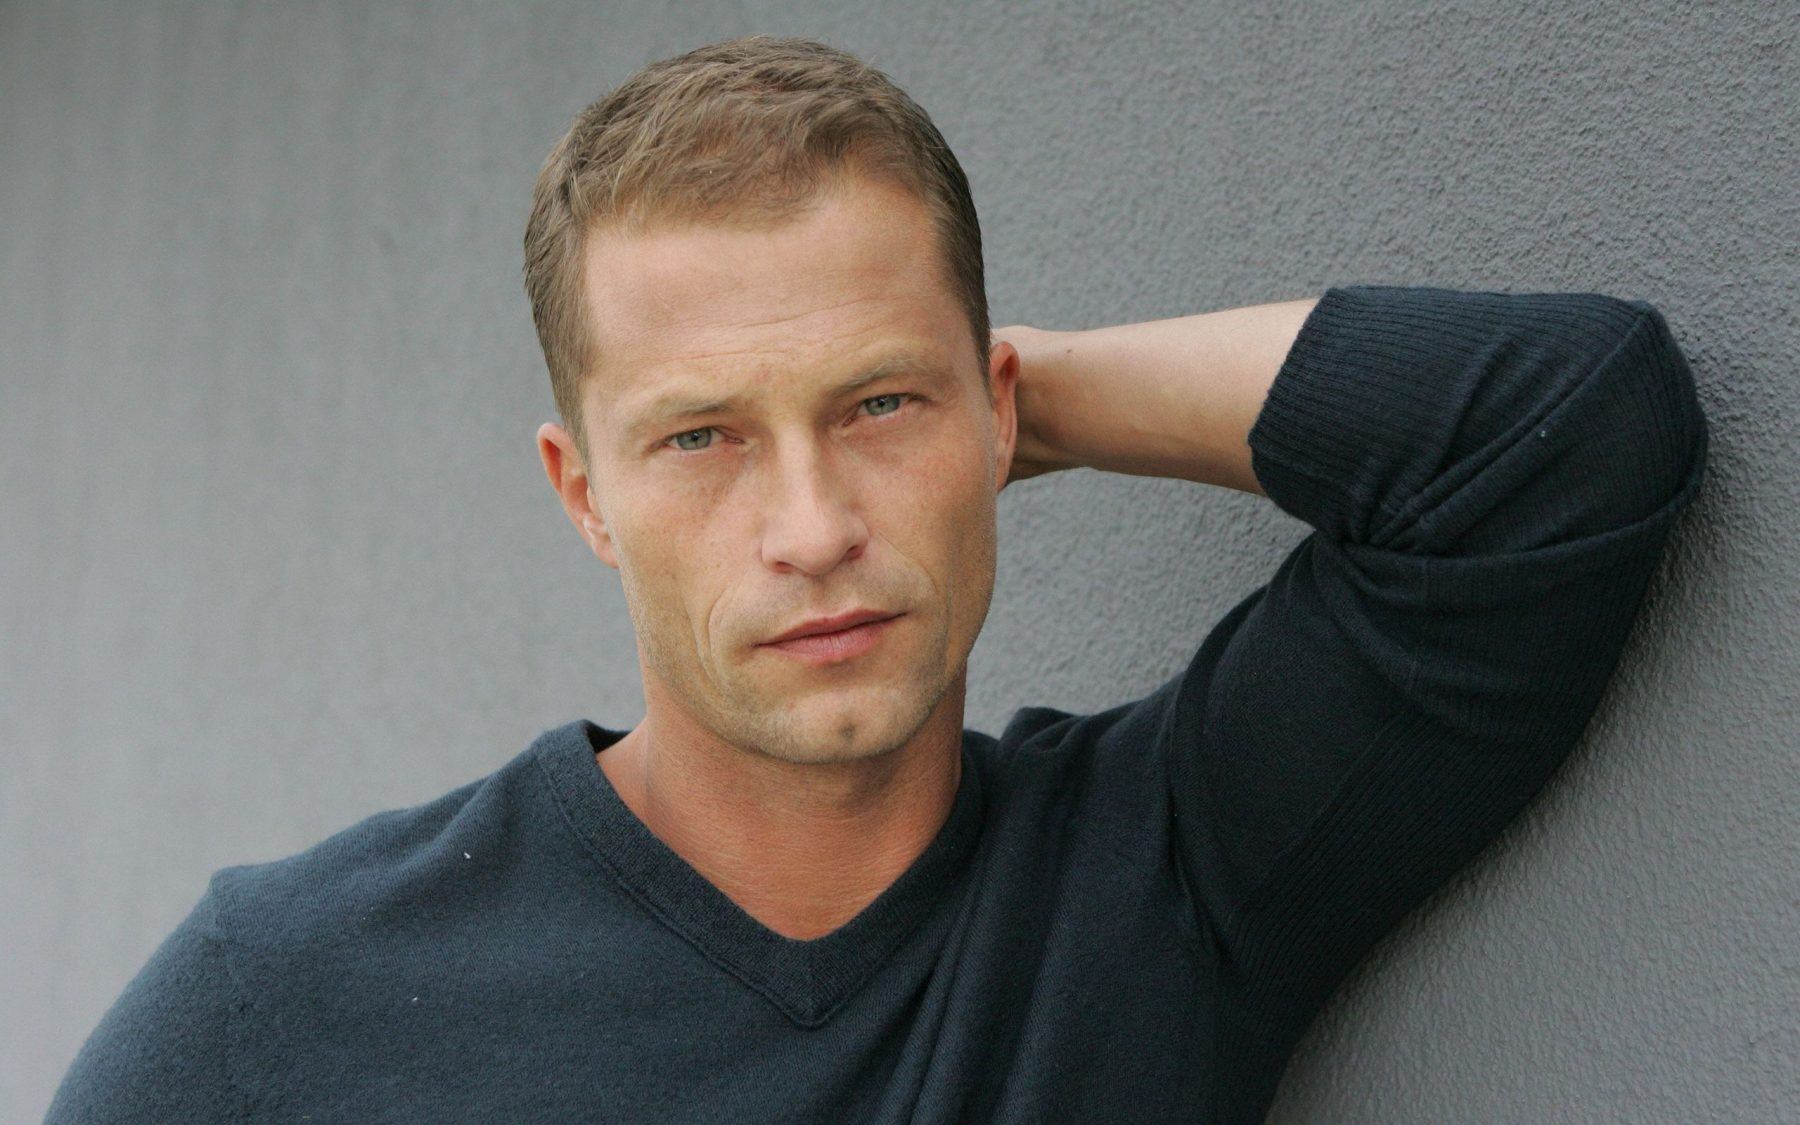 Til Schweiger HD Wallpapers | 7wallpapers.net